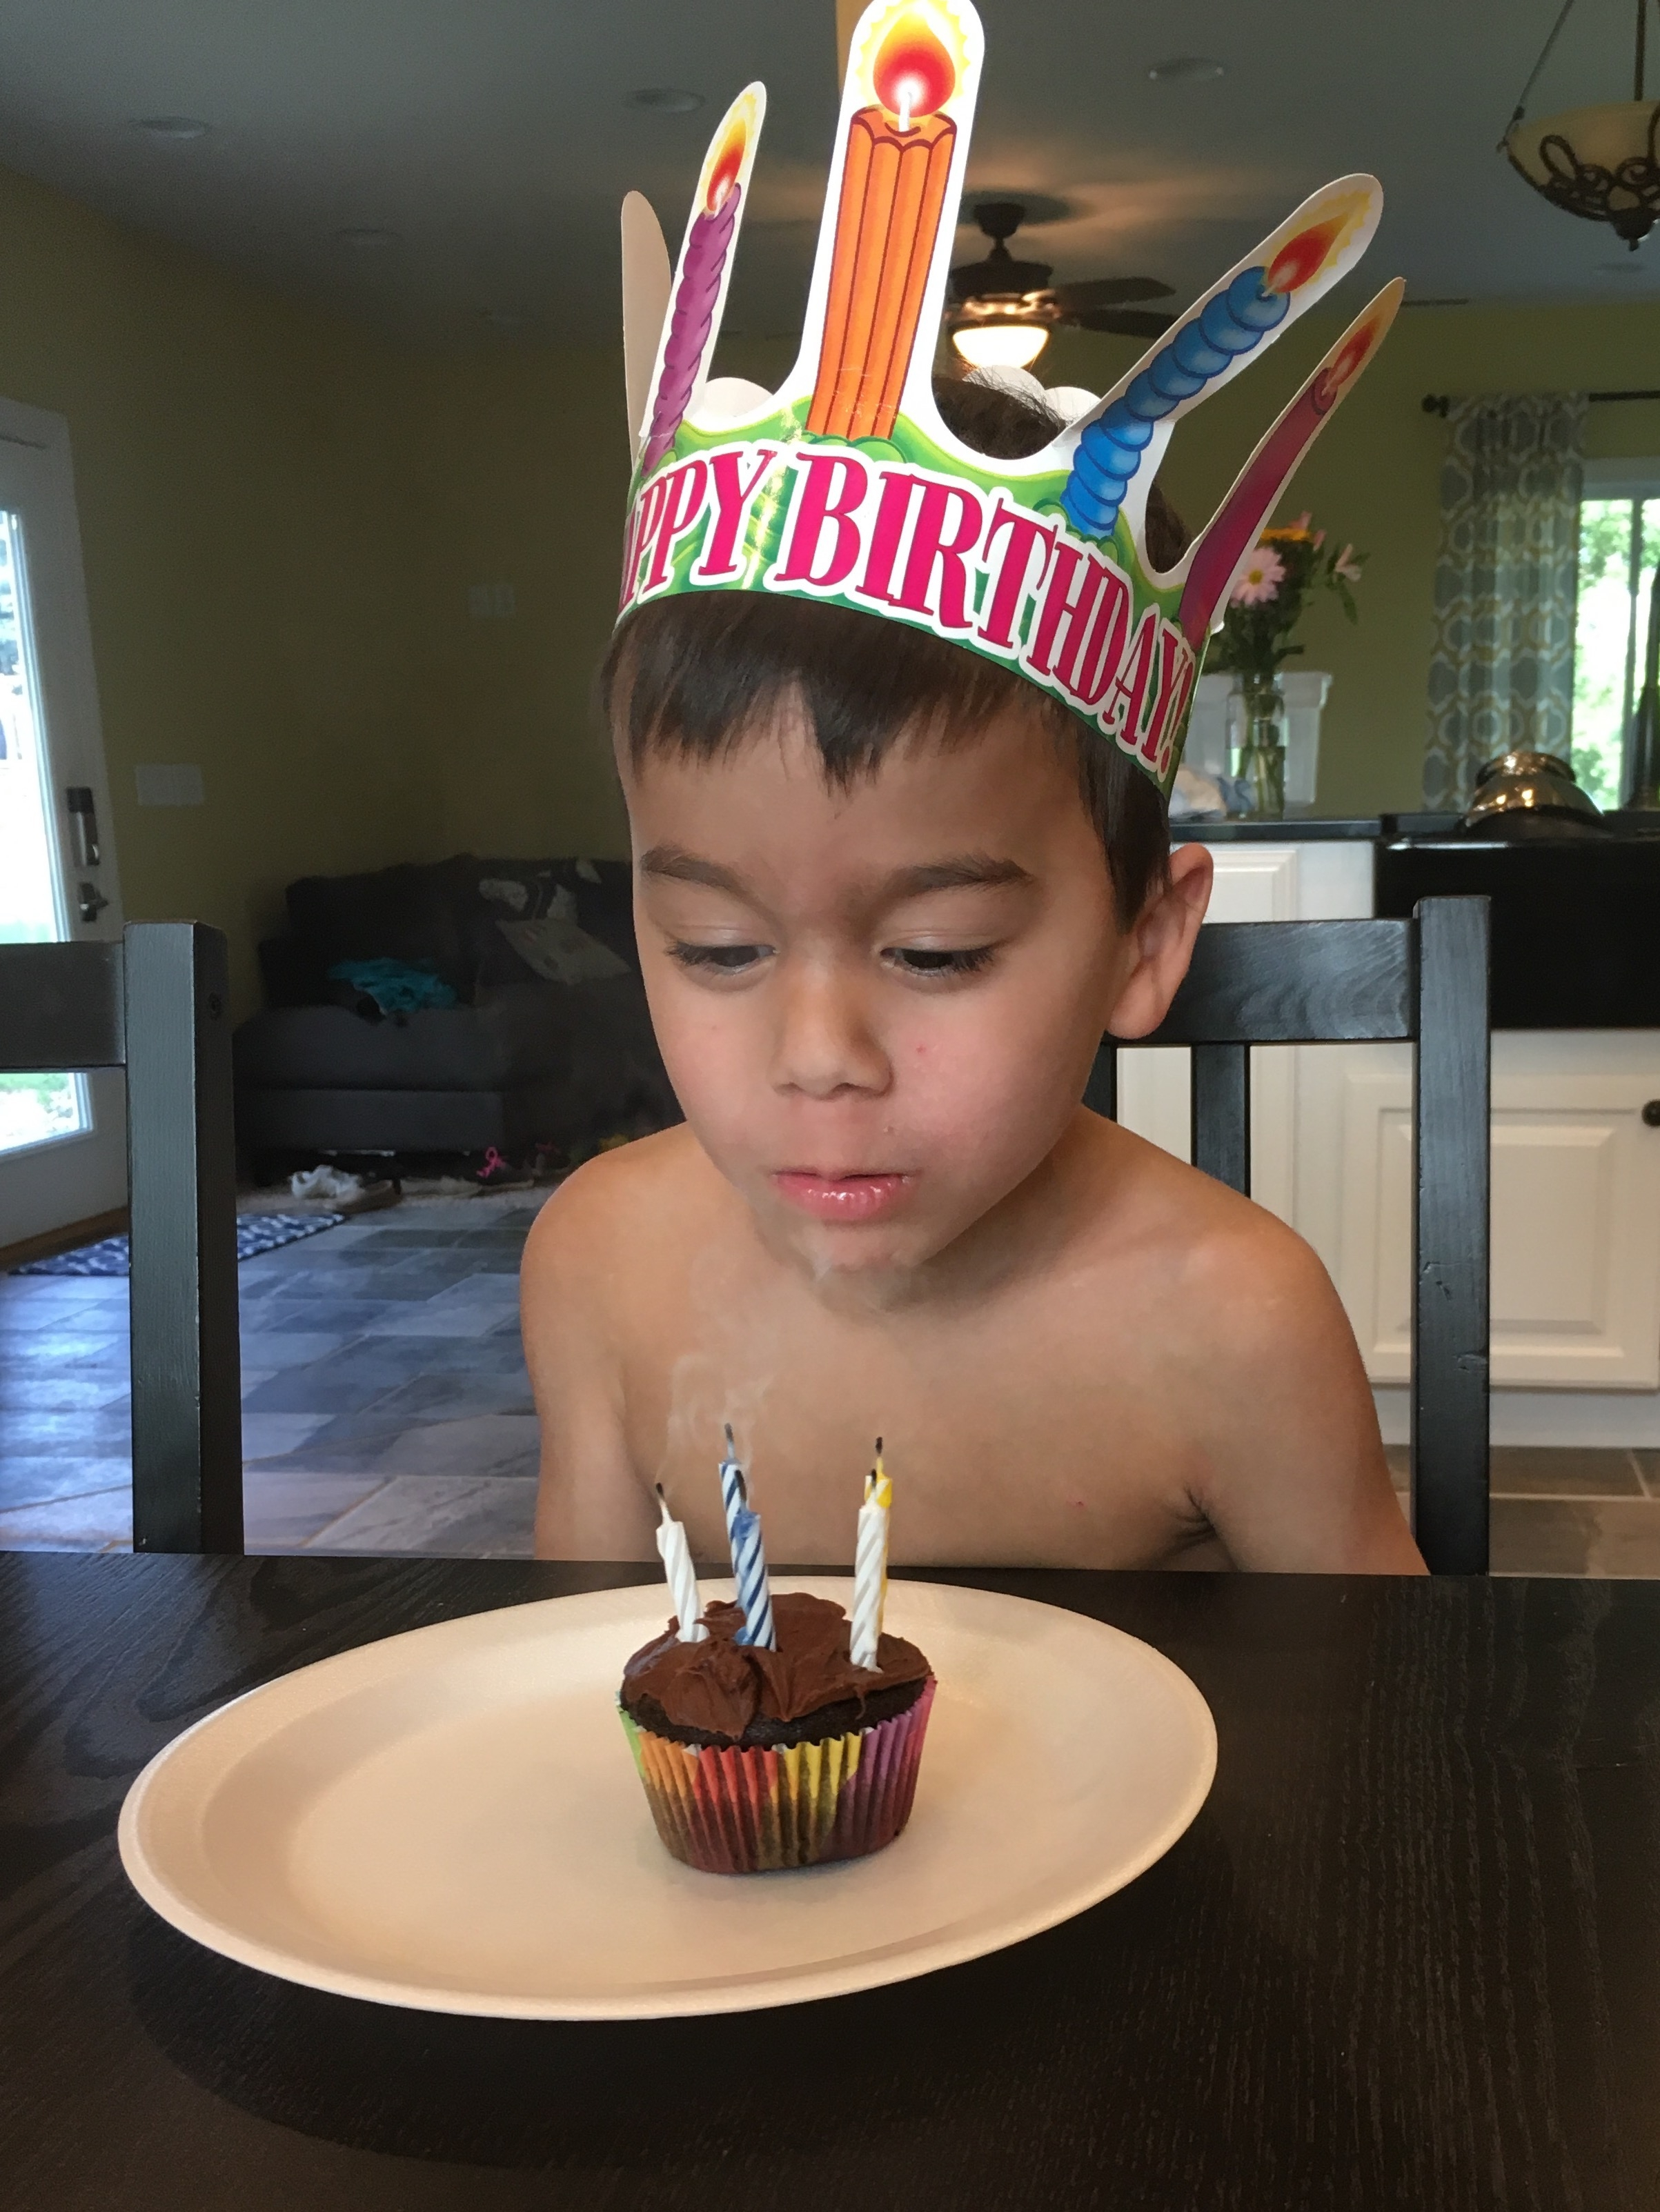 Five year old boy birthday